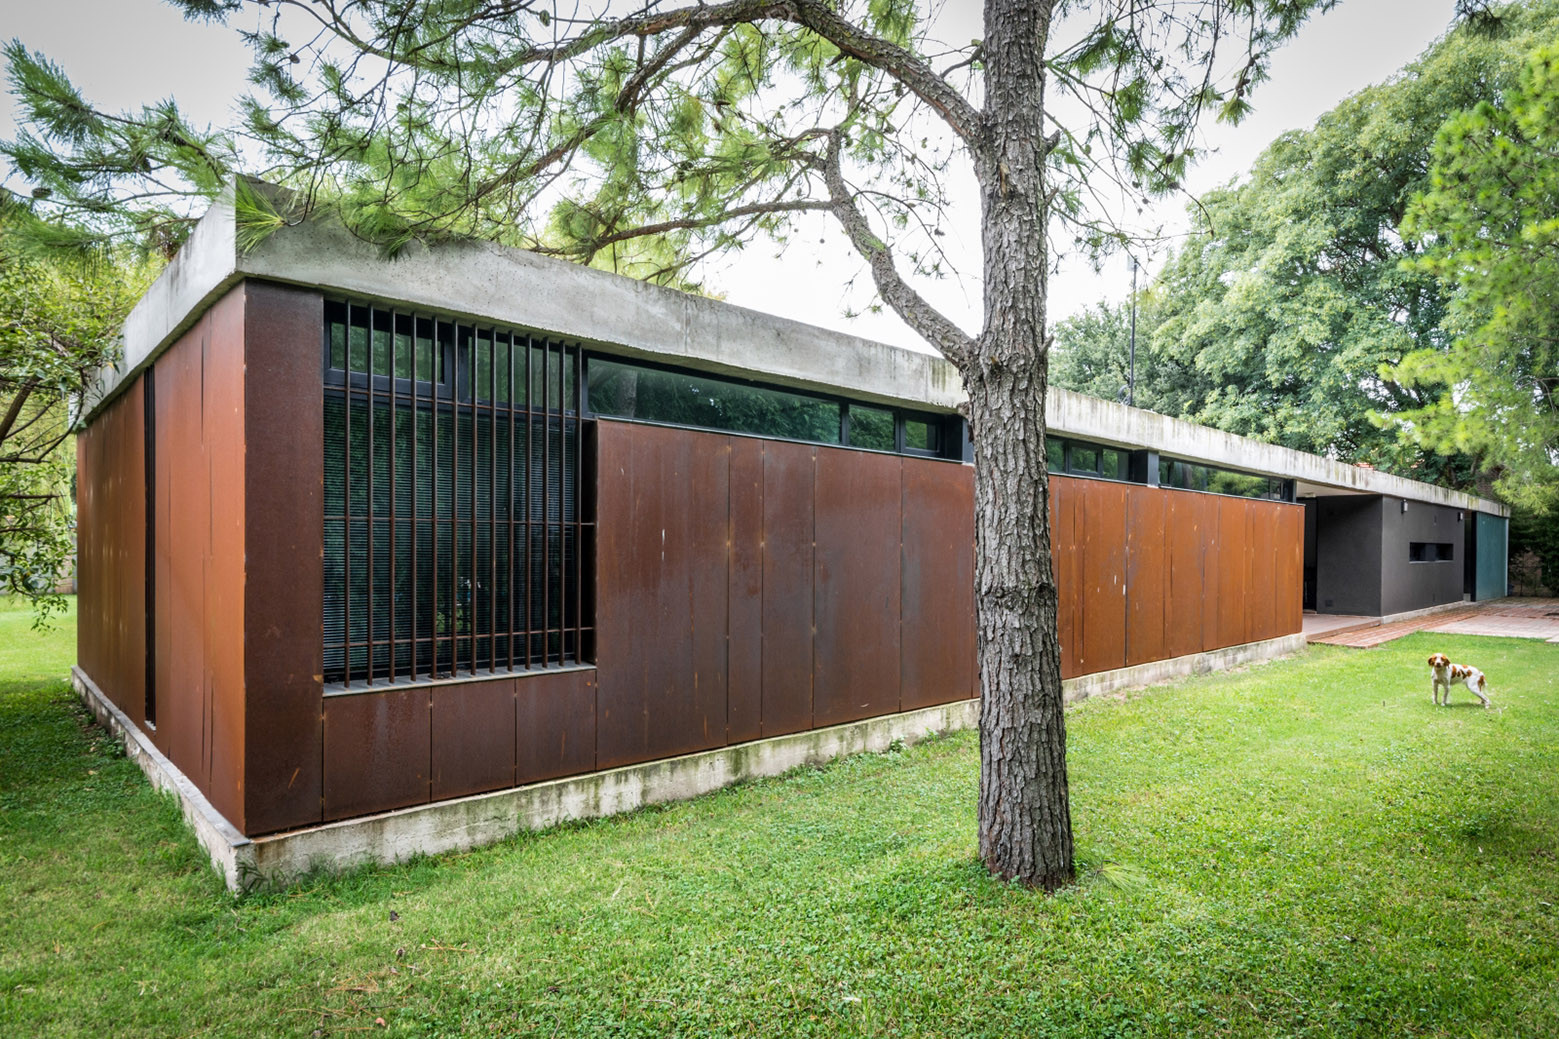 gallery of linear house   roberto benito 11